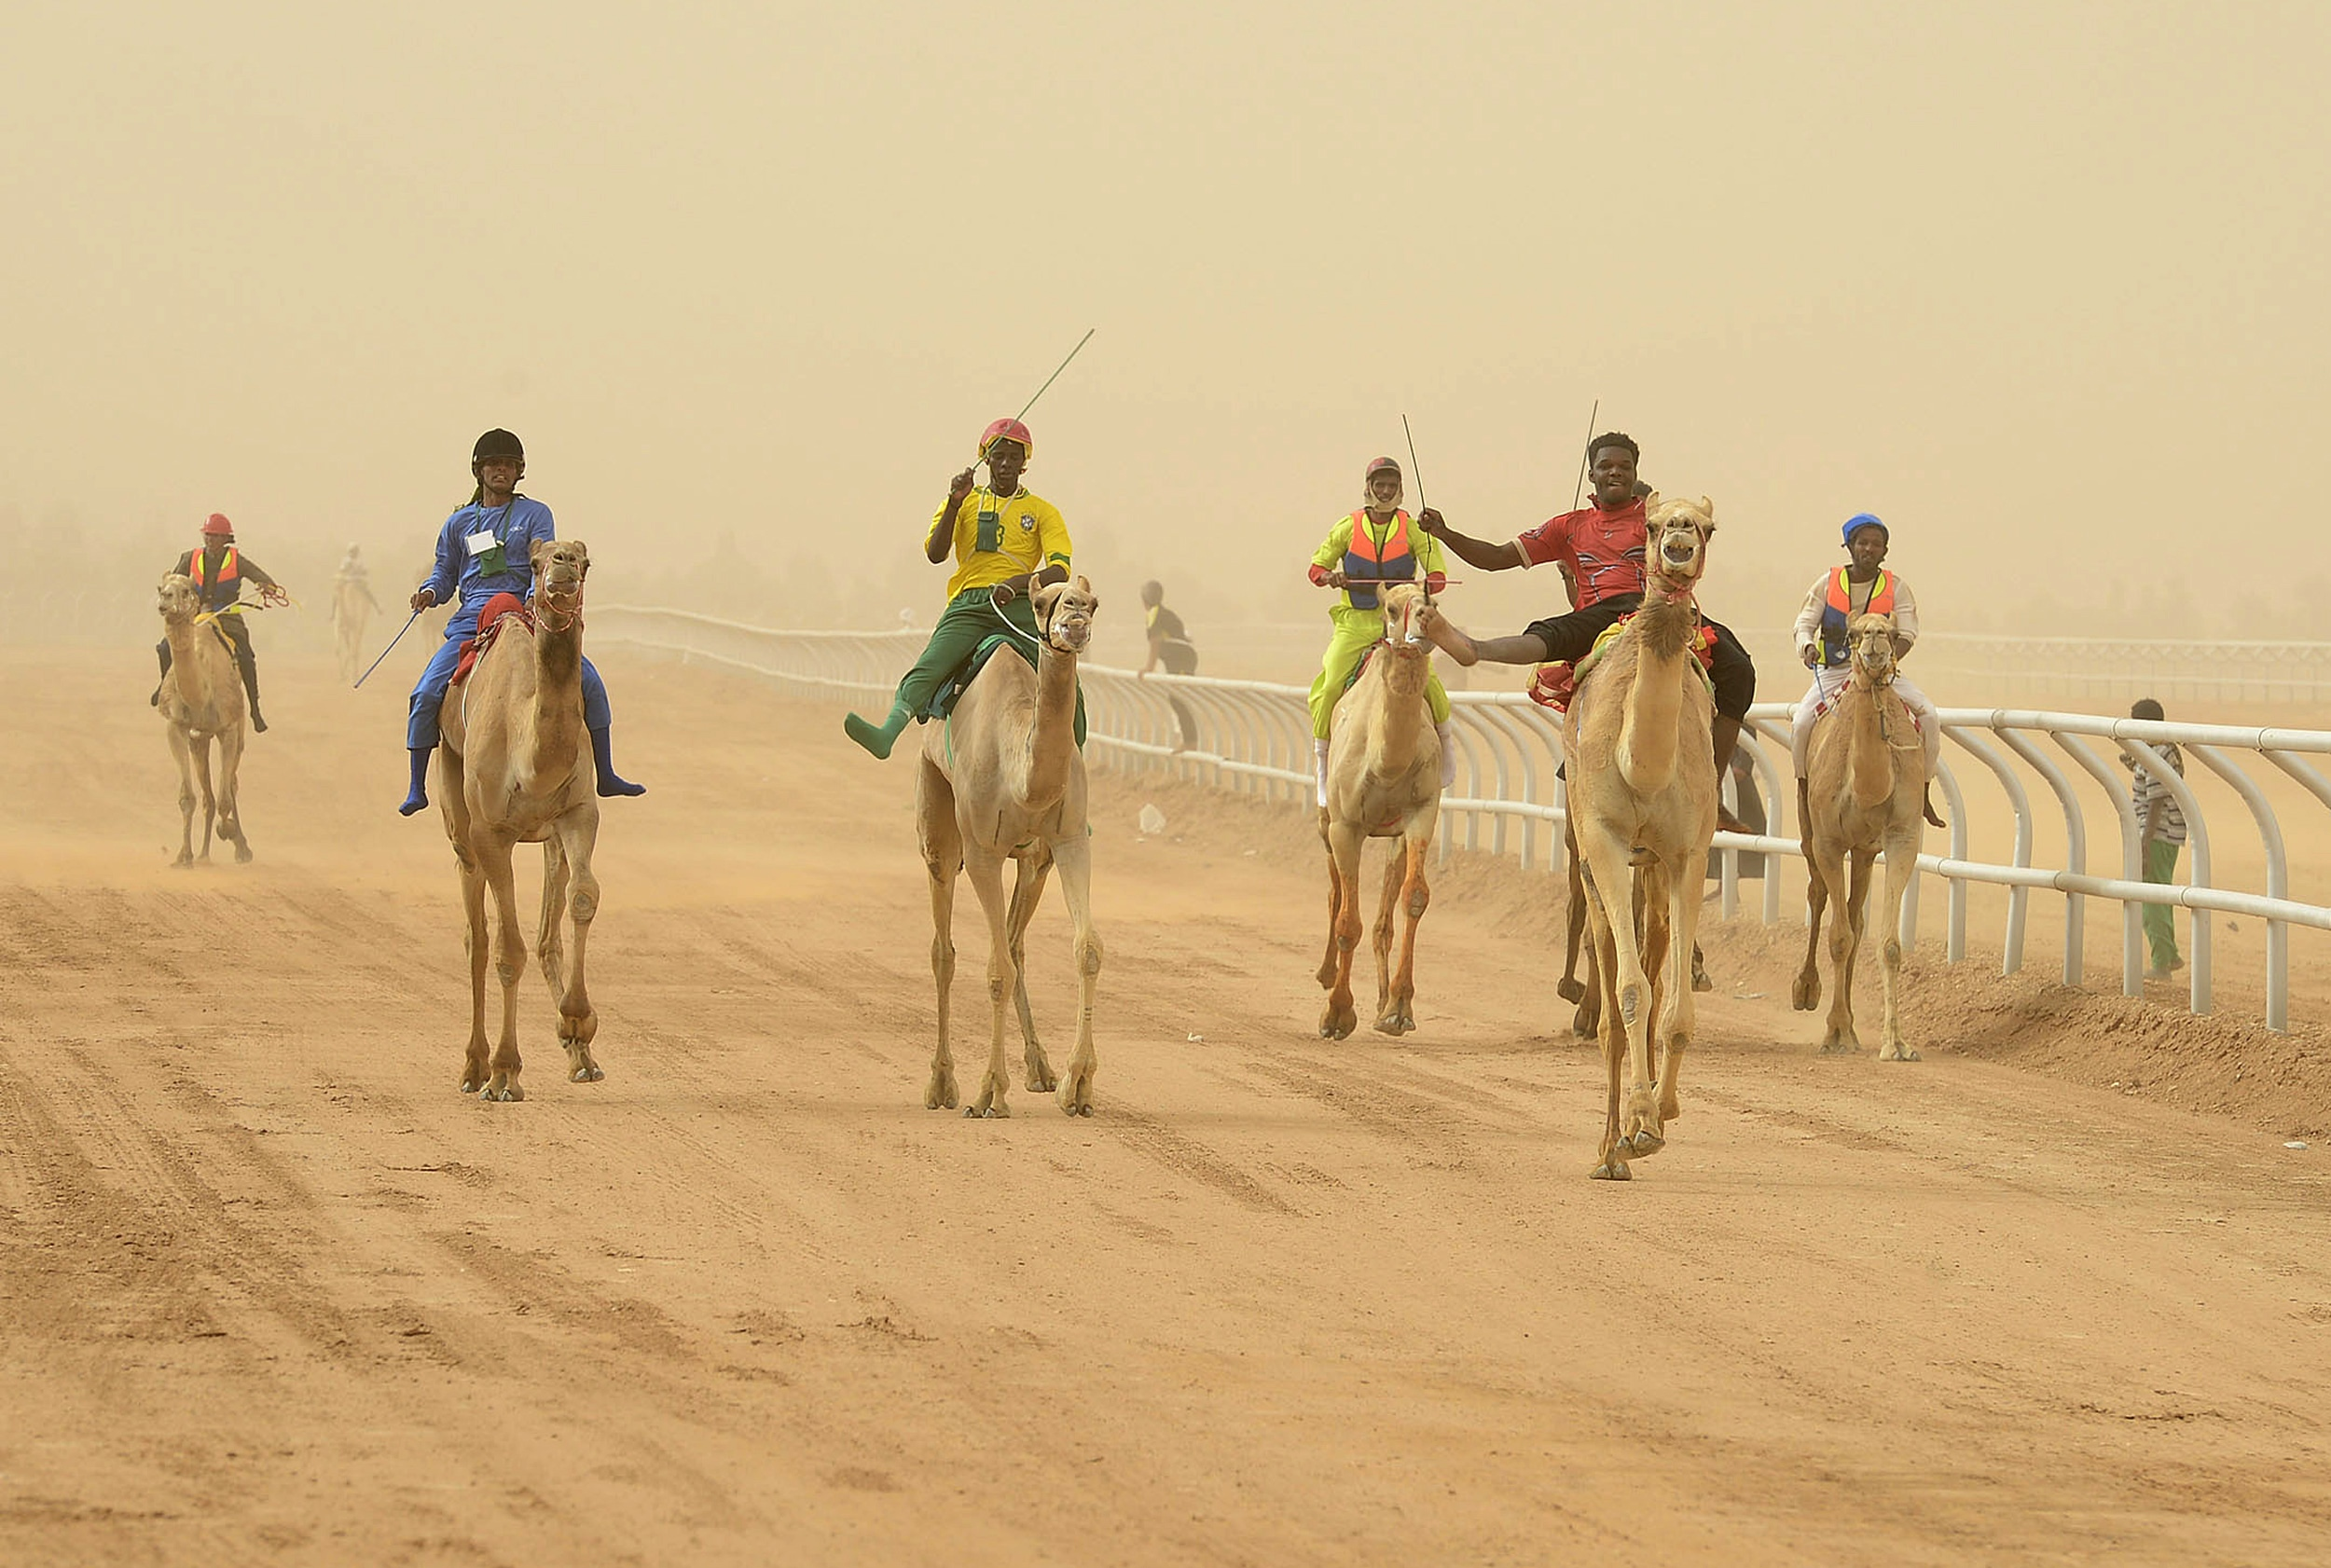 Jockeys race to the finish line during the 20km camel race at the opening of the Janadriya festival near Riyadh.